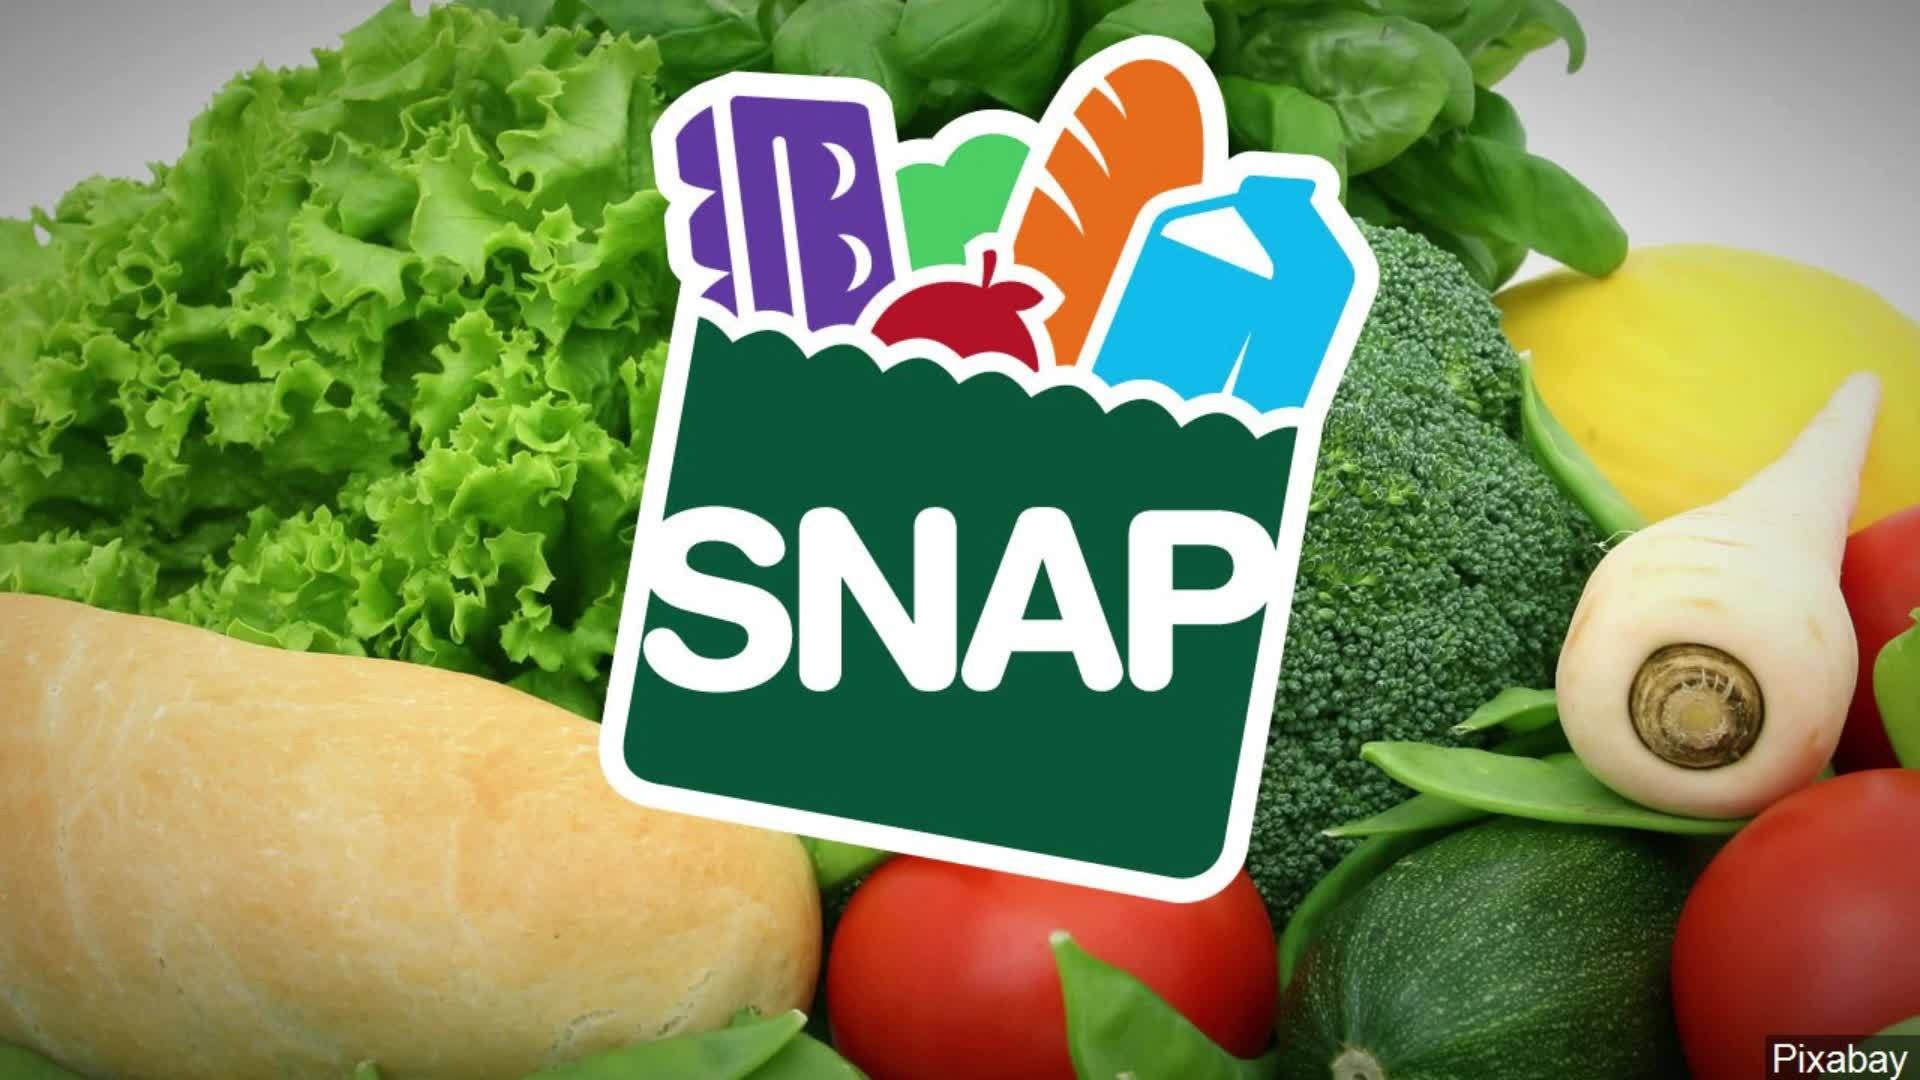 Dentist improperly receives SNAP benefits